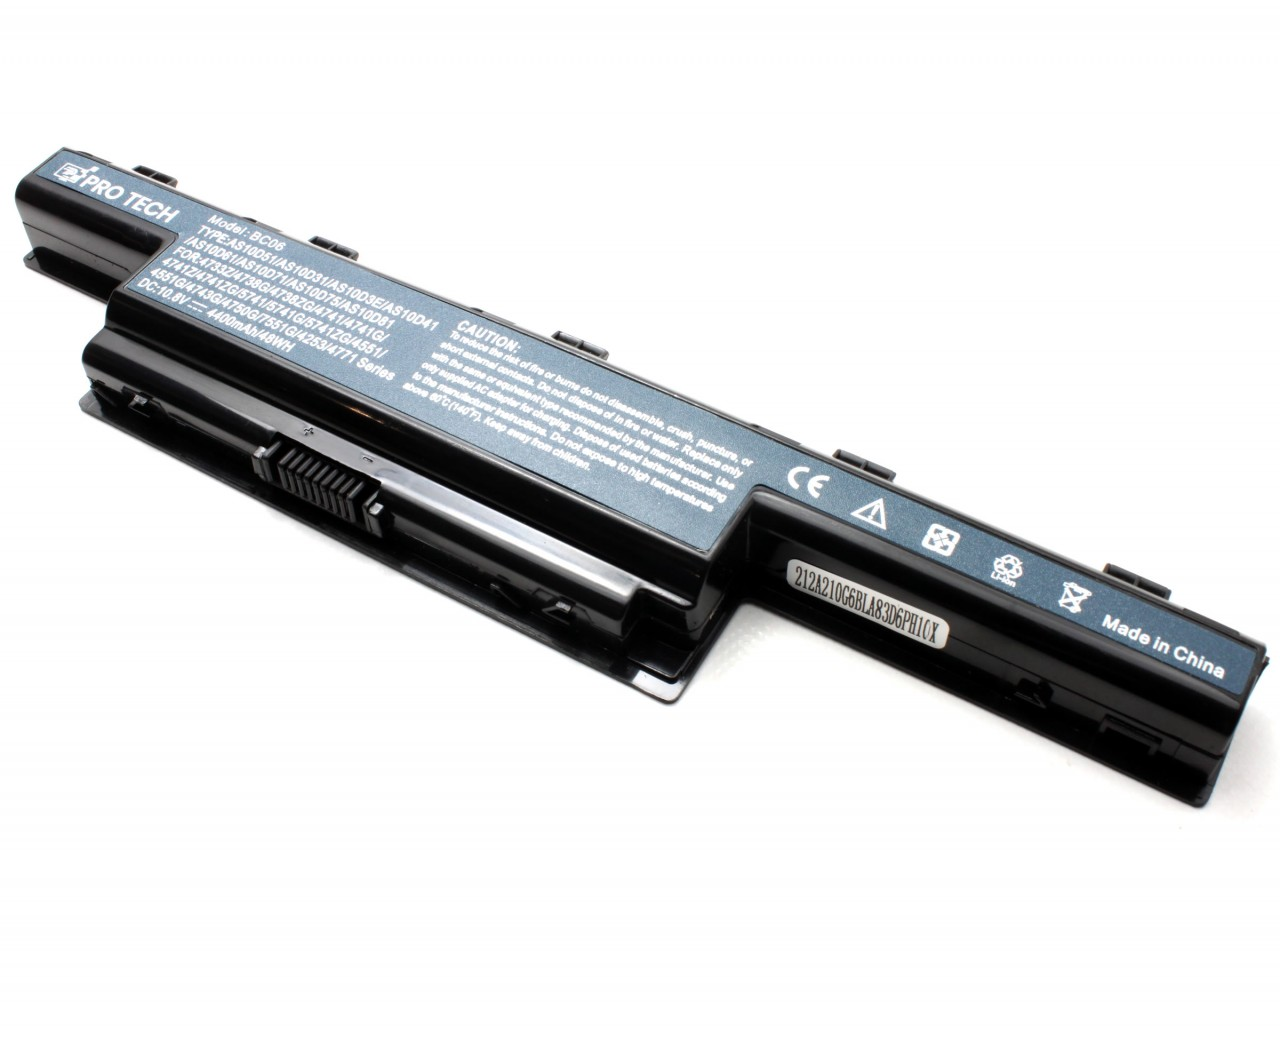 Baterie Packard Bell EasyNote TM81 6 celule imagine powerlaptop.ro 2021